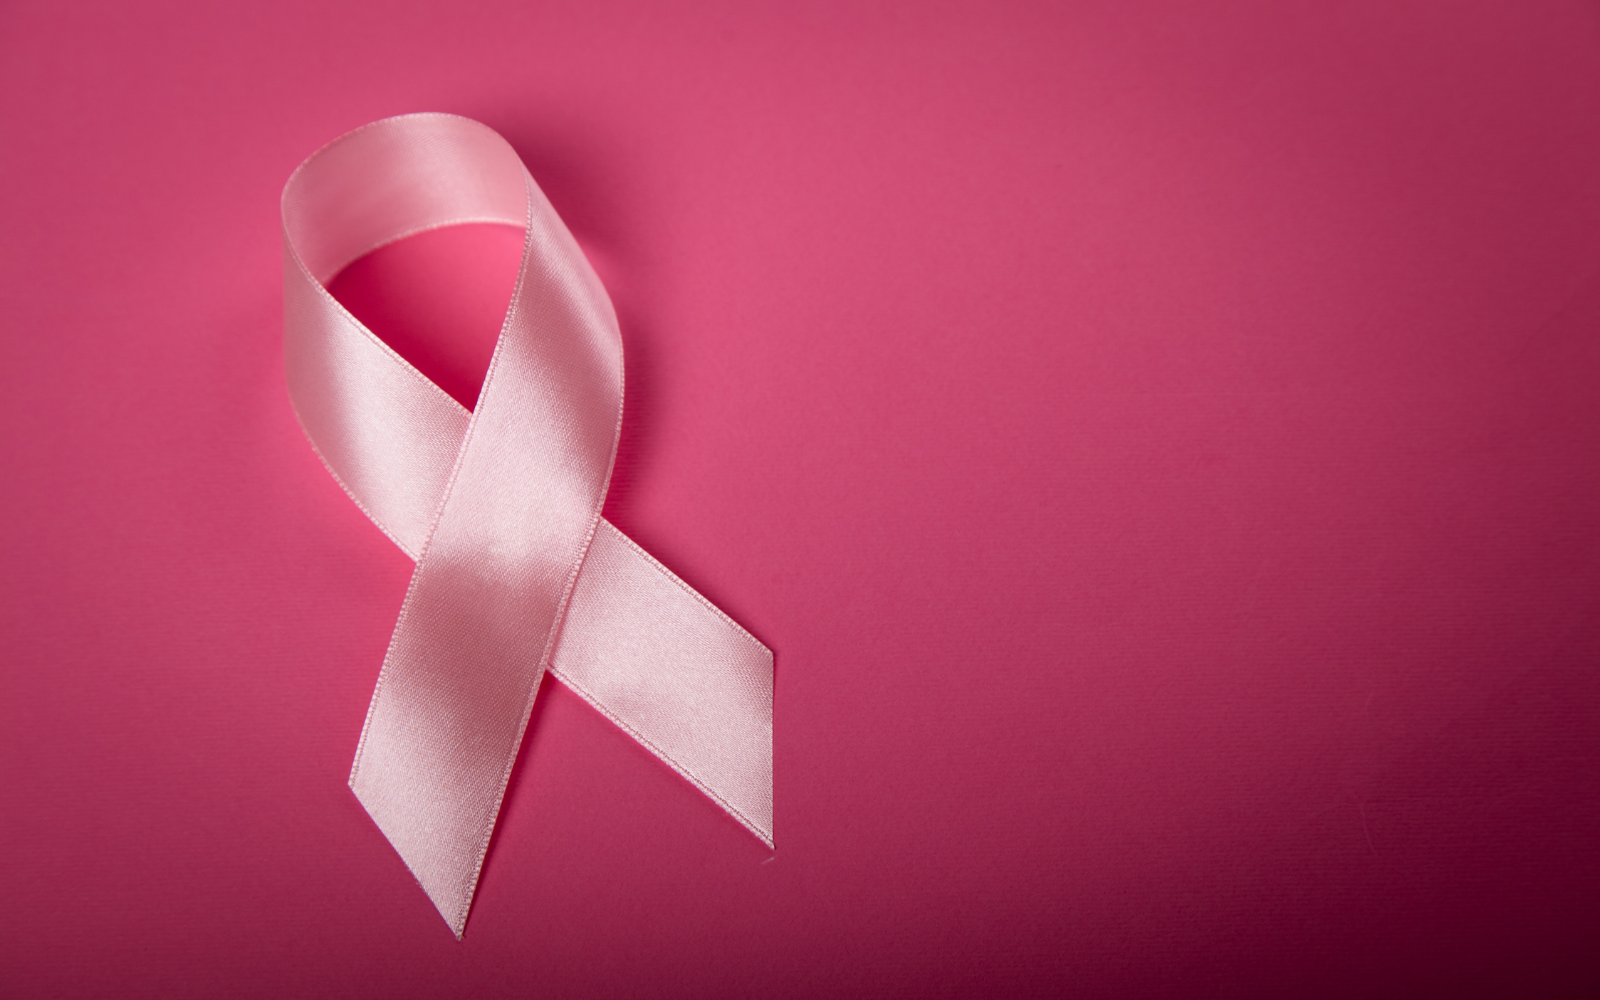 Benton Nissan of Hoover is raising money to benefit The Breast Cancer Research Foundation of Alabama! image